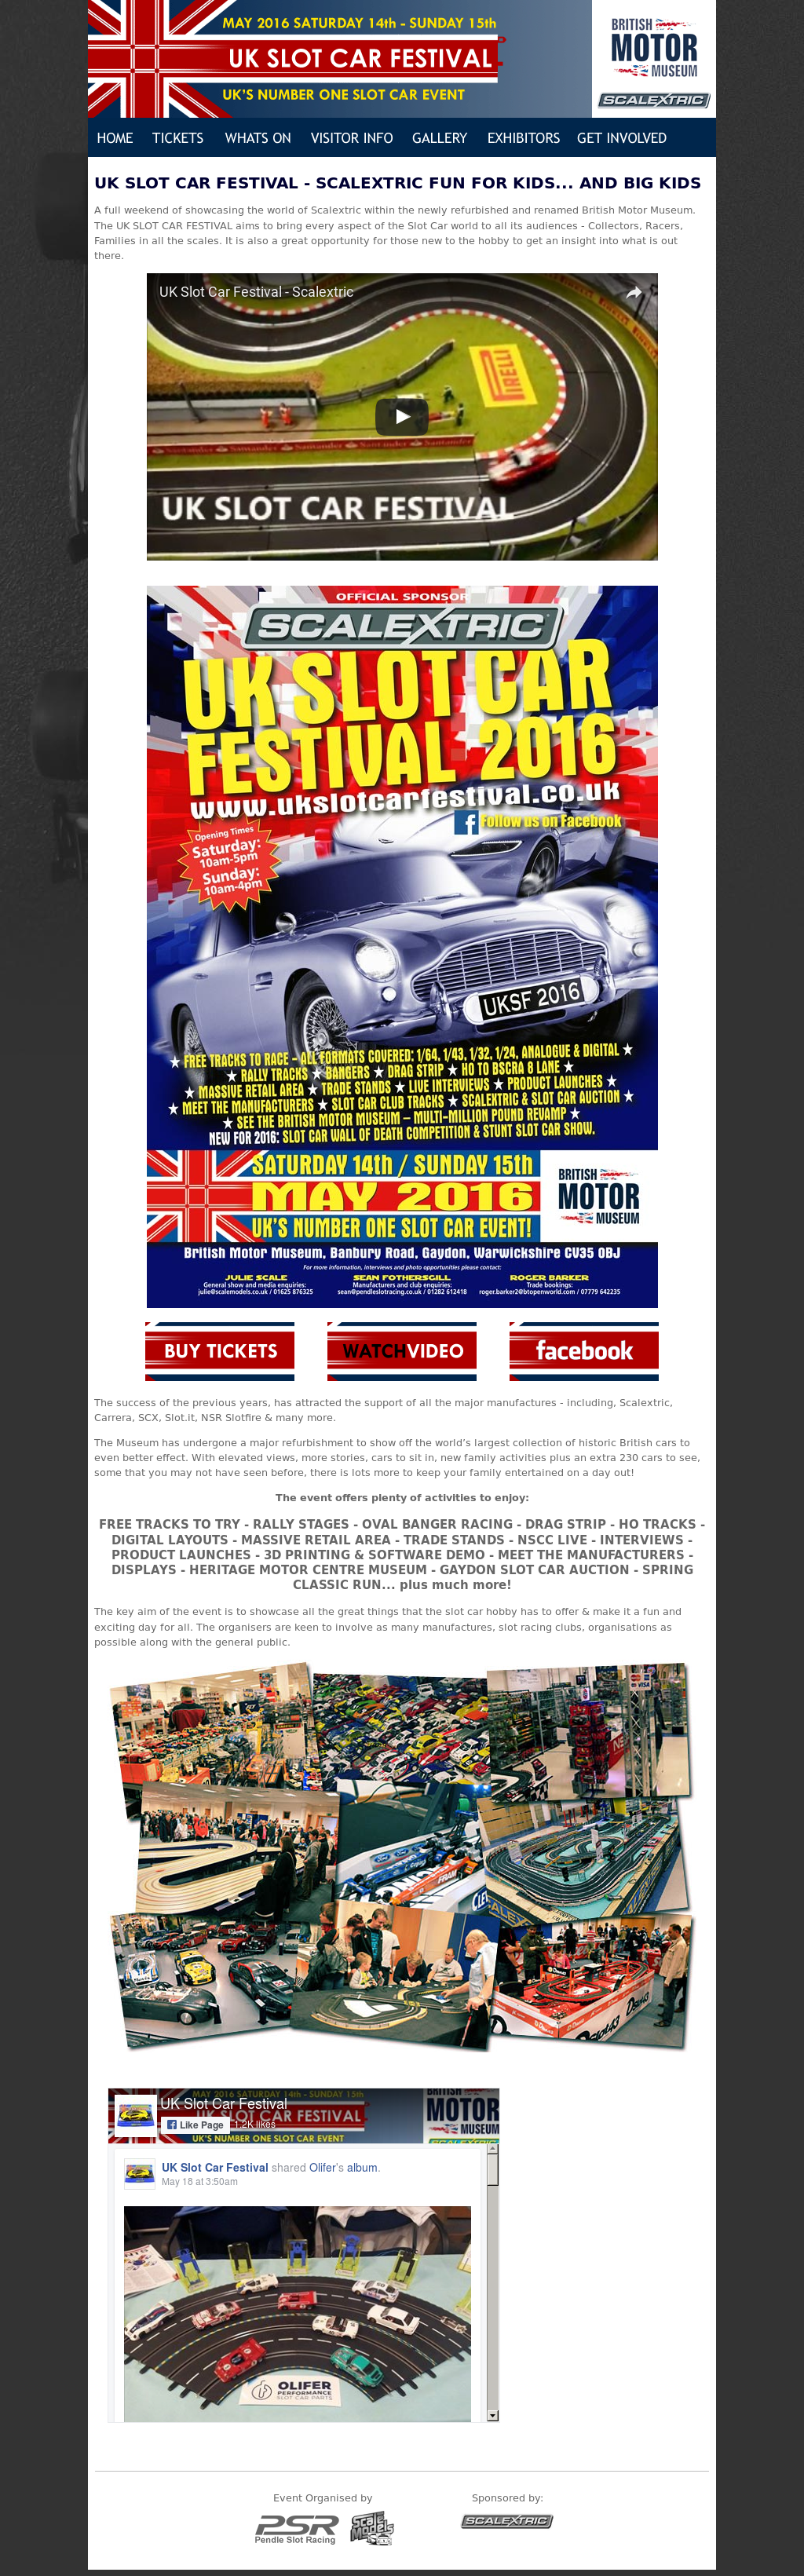 Uk Slot Car Festival Competitors, Revenue and Employees